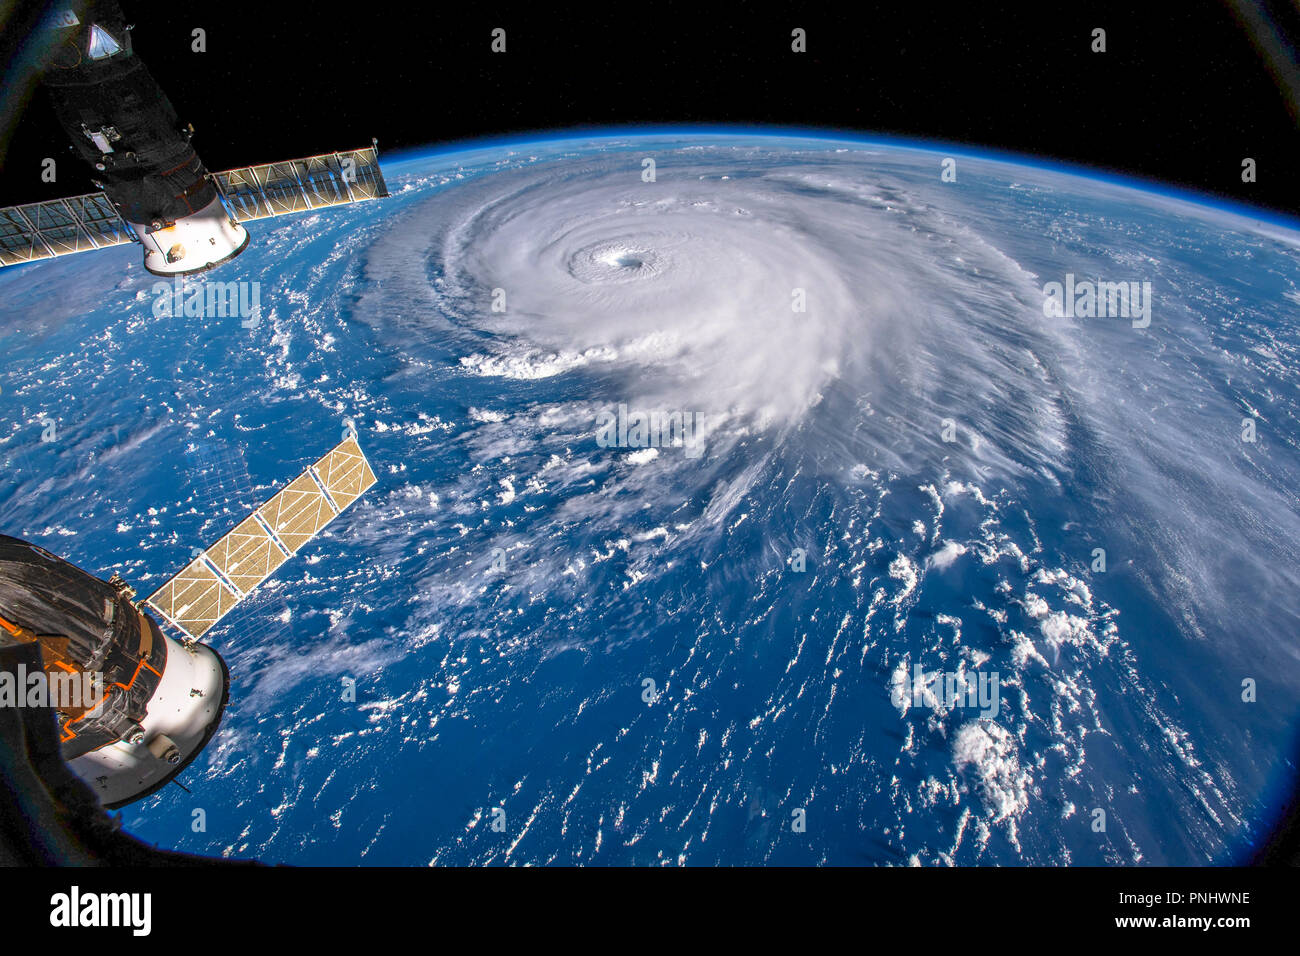 Hurricane Florence seen from space by the ISS ( International Space Station). This image is a NASA handout. - Stock Image